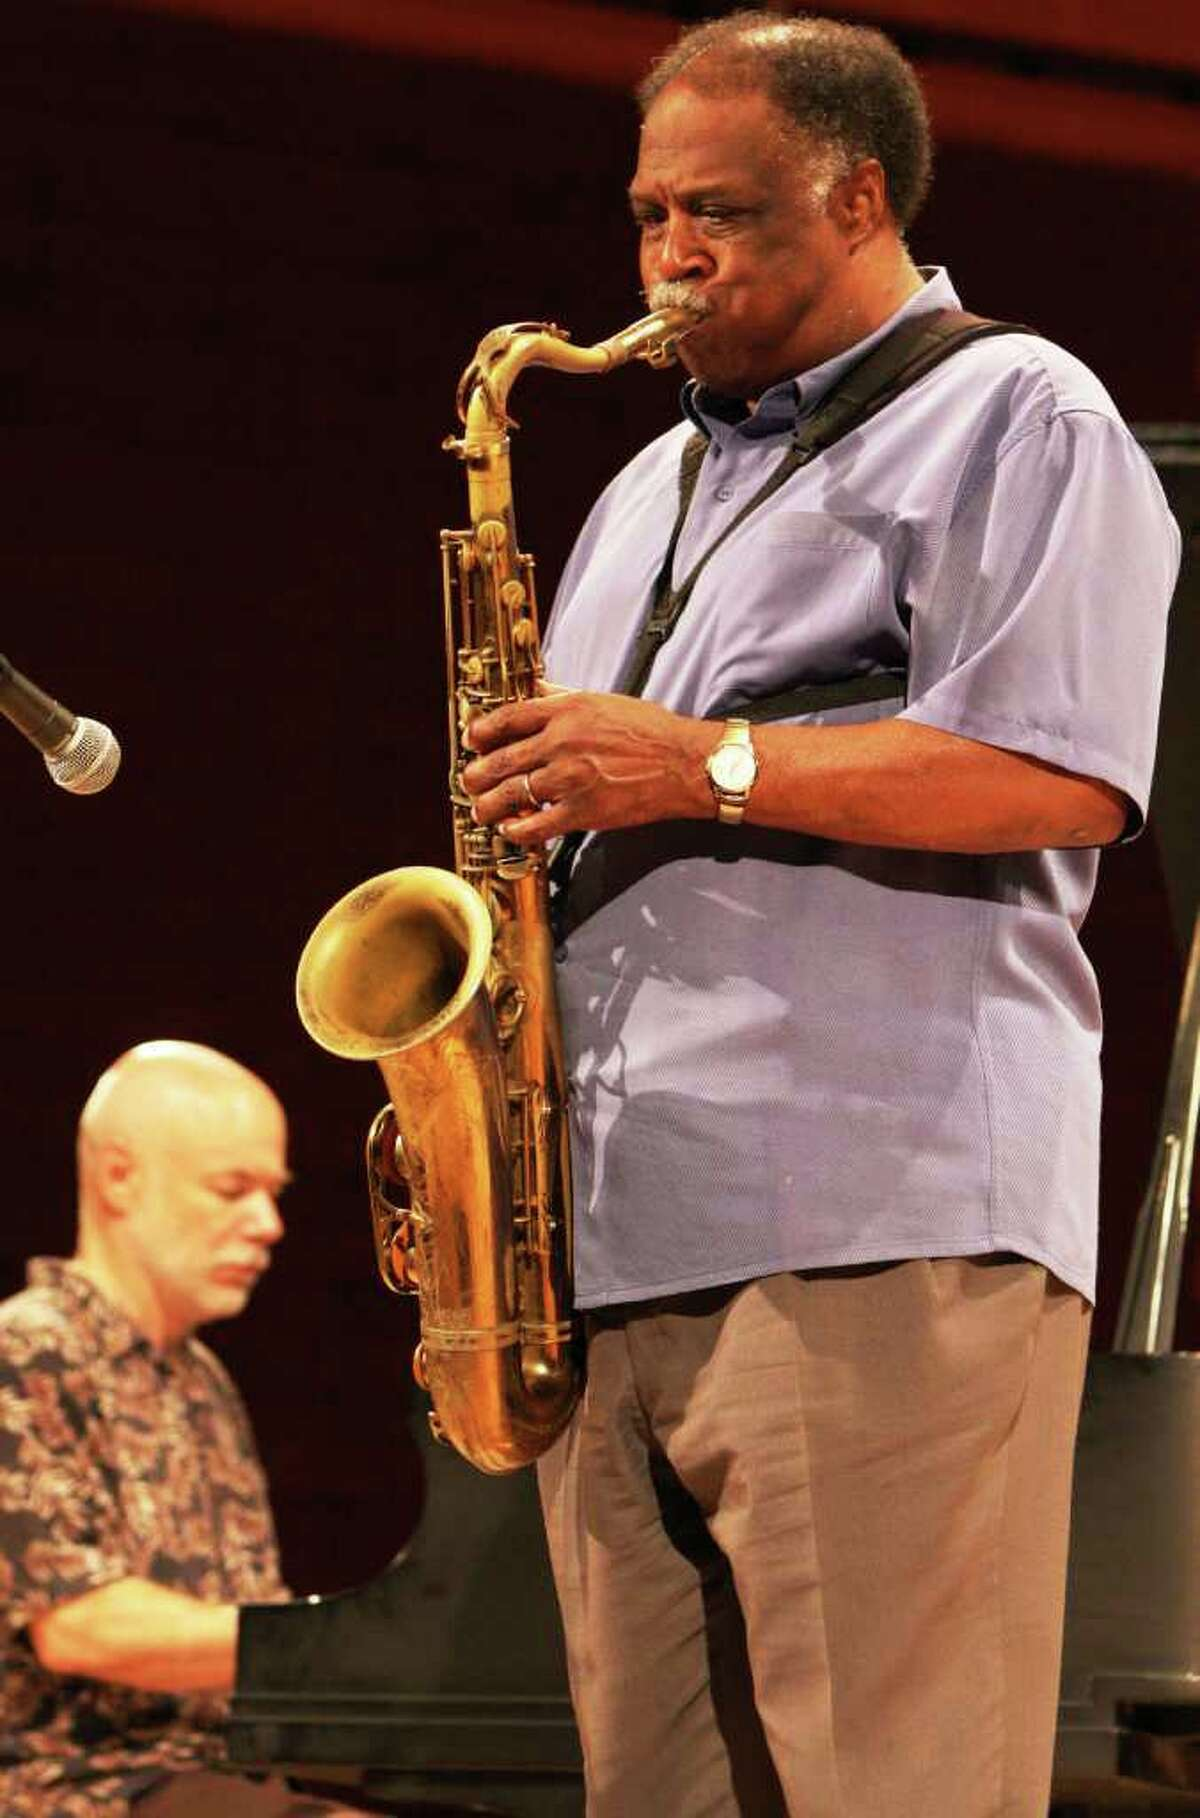 Sax player Houston Person and pianist Larry Ham perform at UTSA Monday.